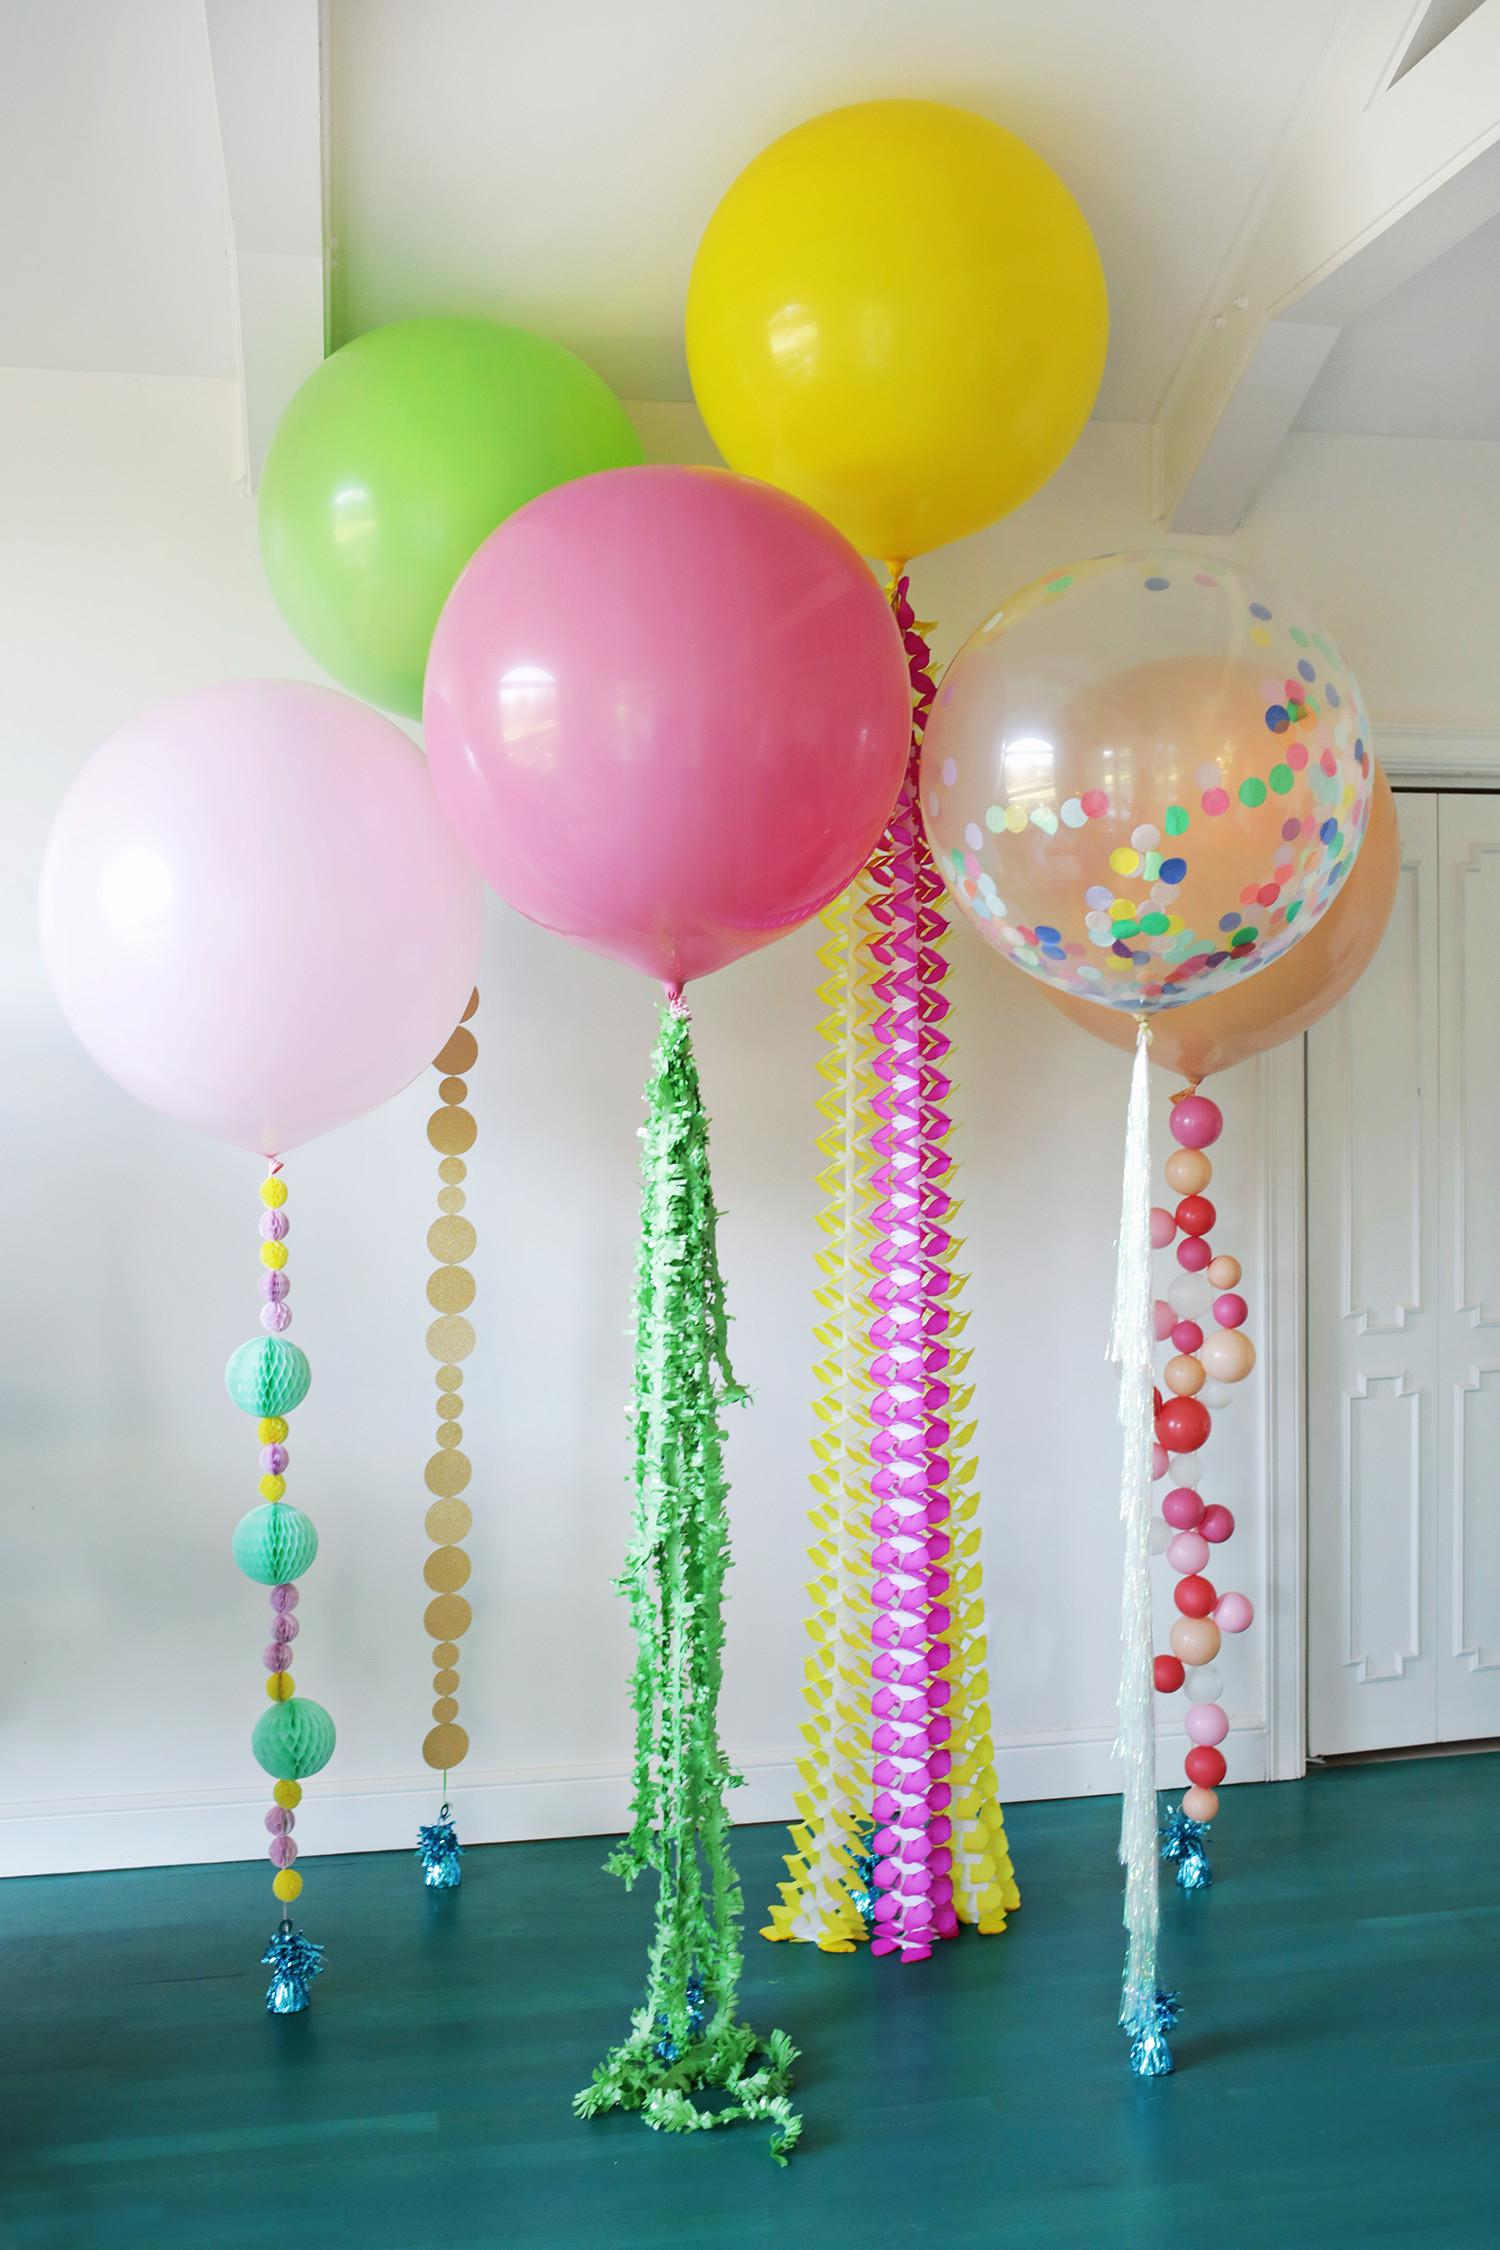 Festive Diy Balloon Tails Clever Crafty